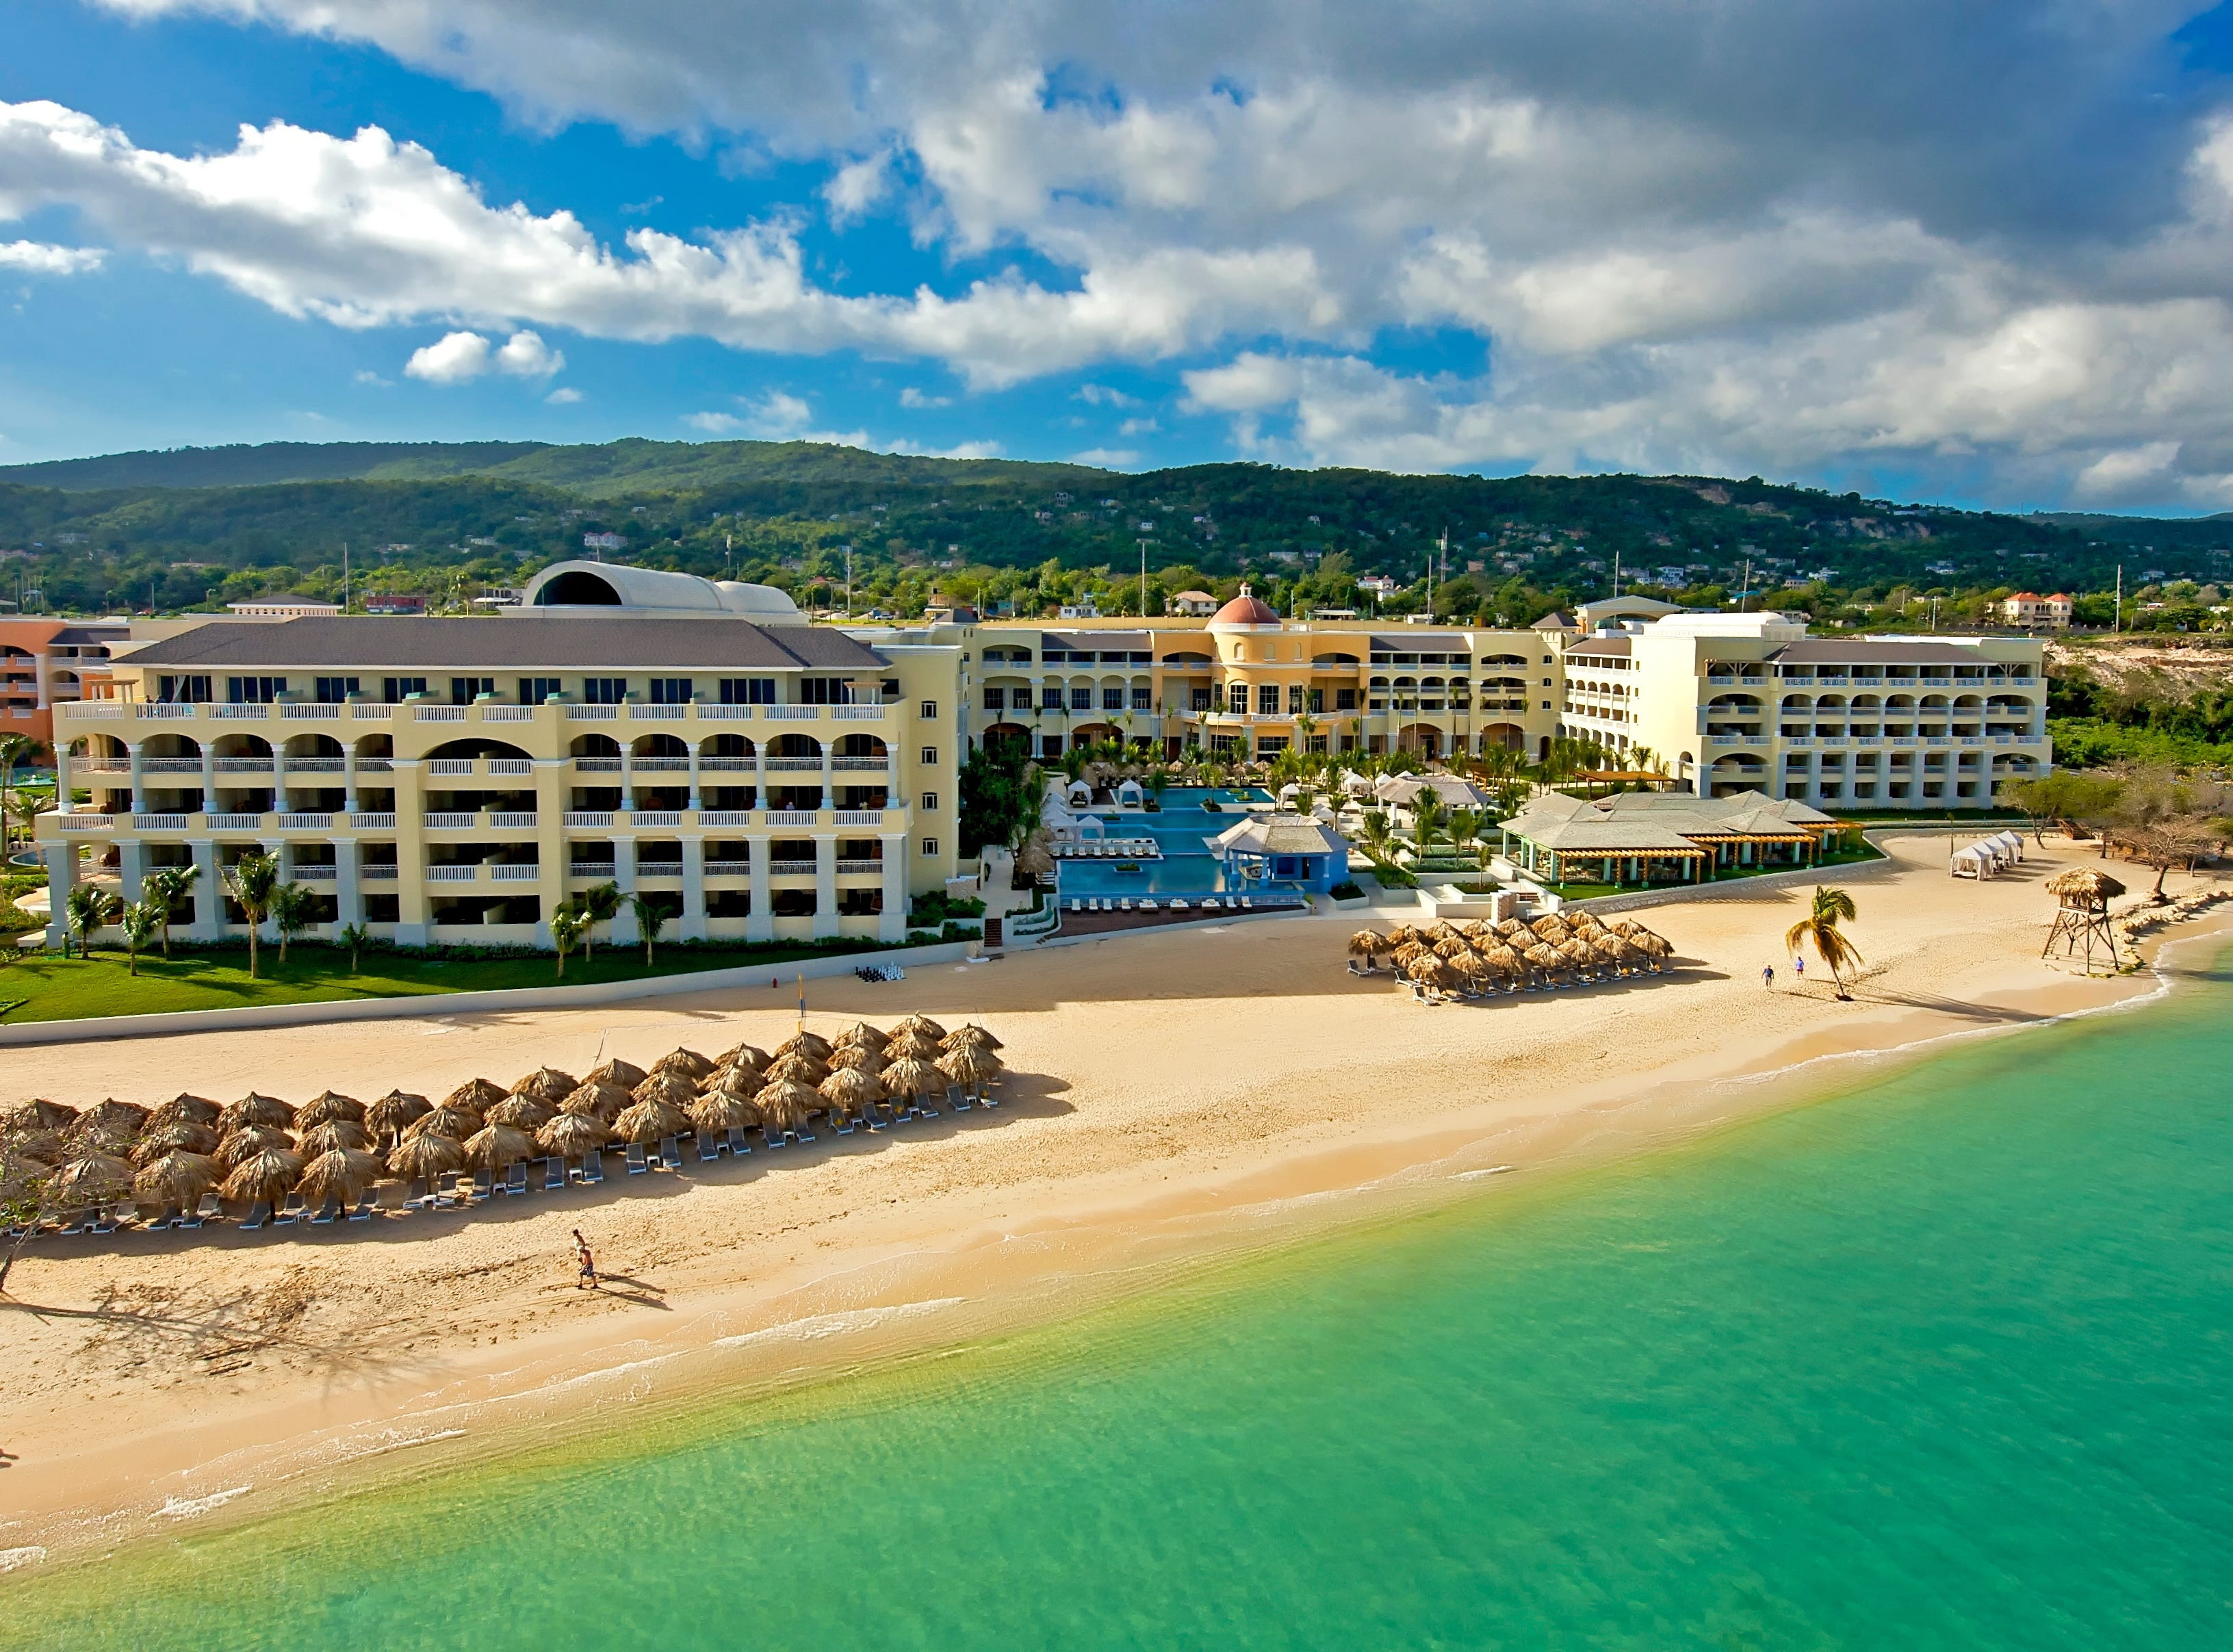 Montego Bay, Jamaica, is one of Travelzoo's top international destinations for January, with one-way flights starting at $233 from Washington, D.C.